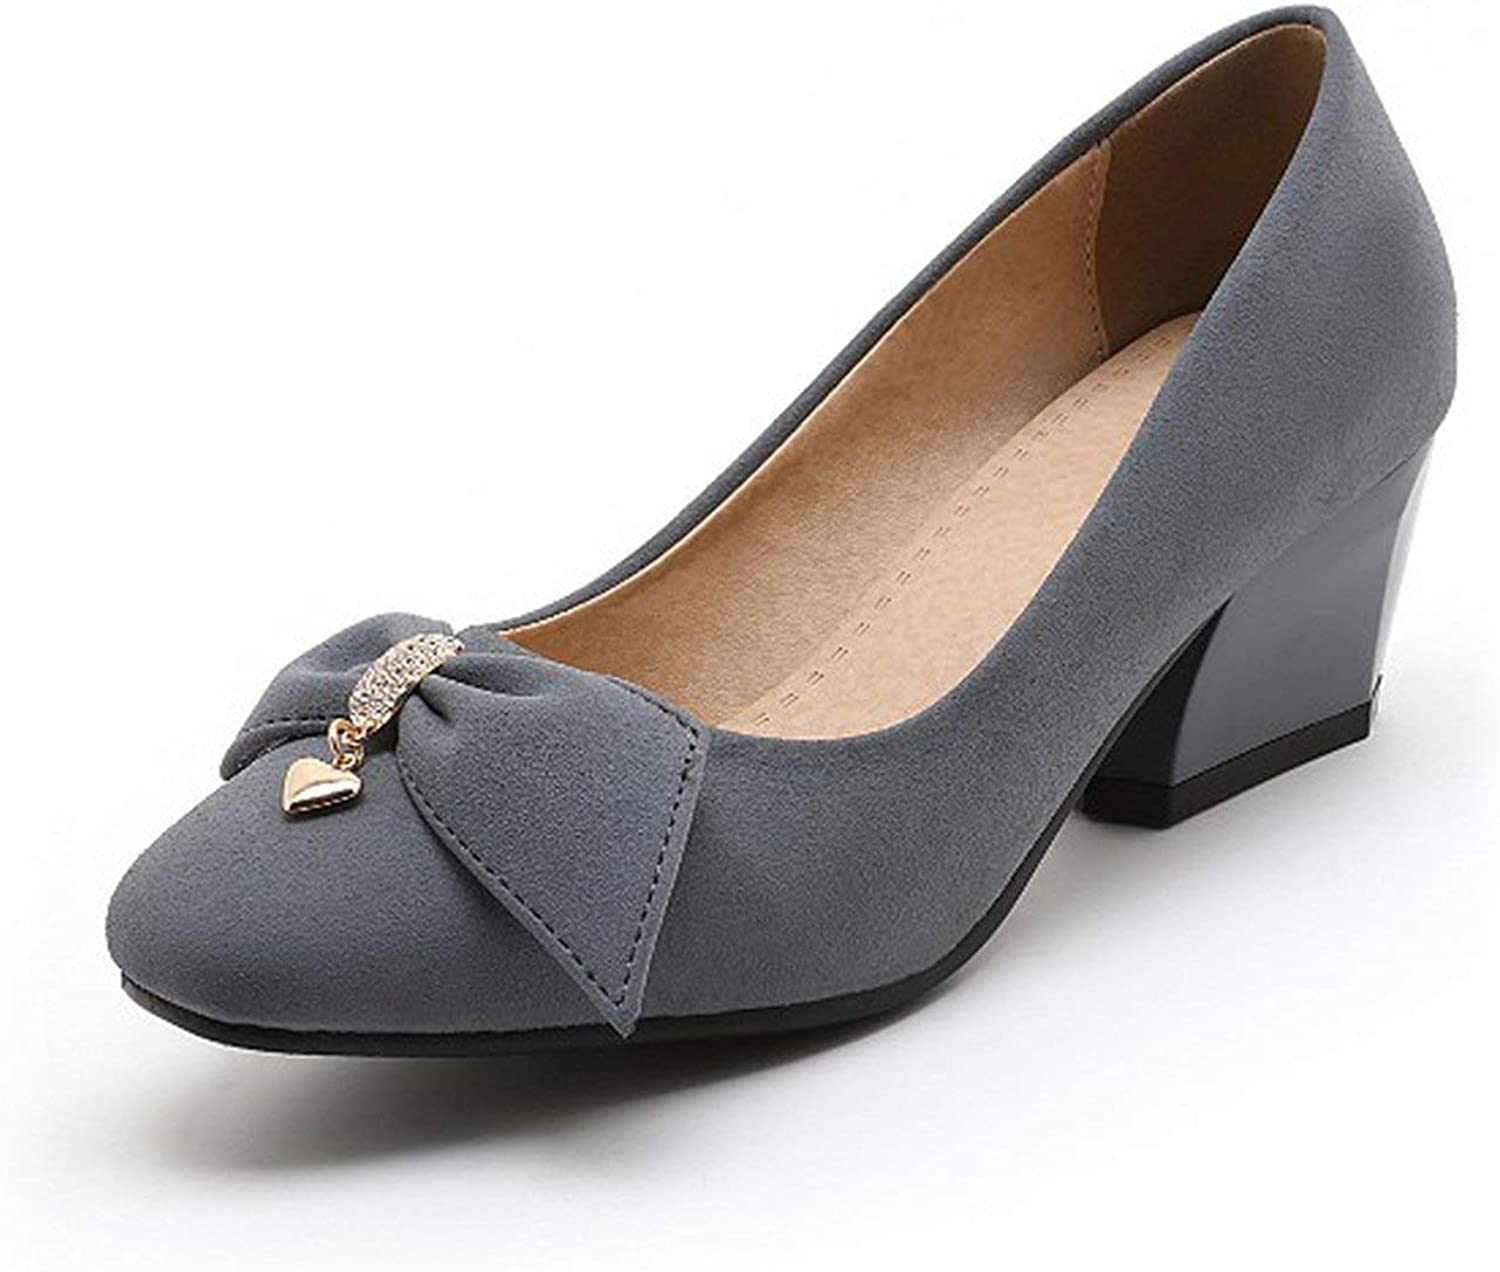 31-47Spring Autumn Women's Pumps Square Toe Women shoes High Heels Concise and shoes 504